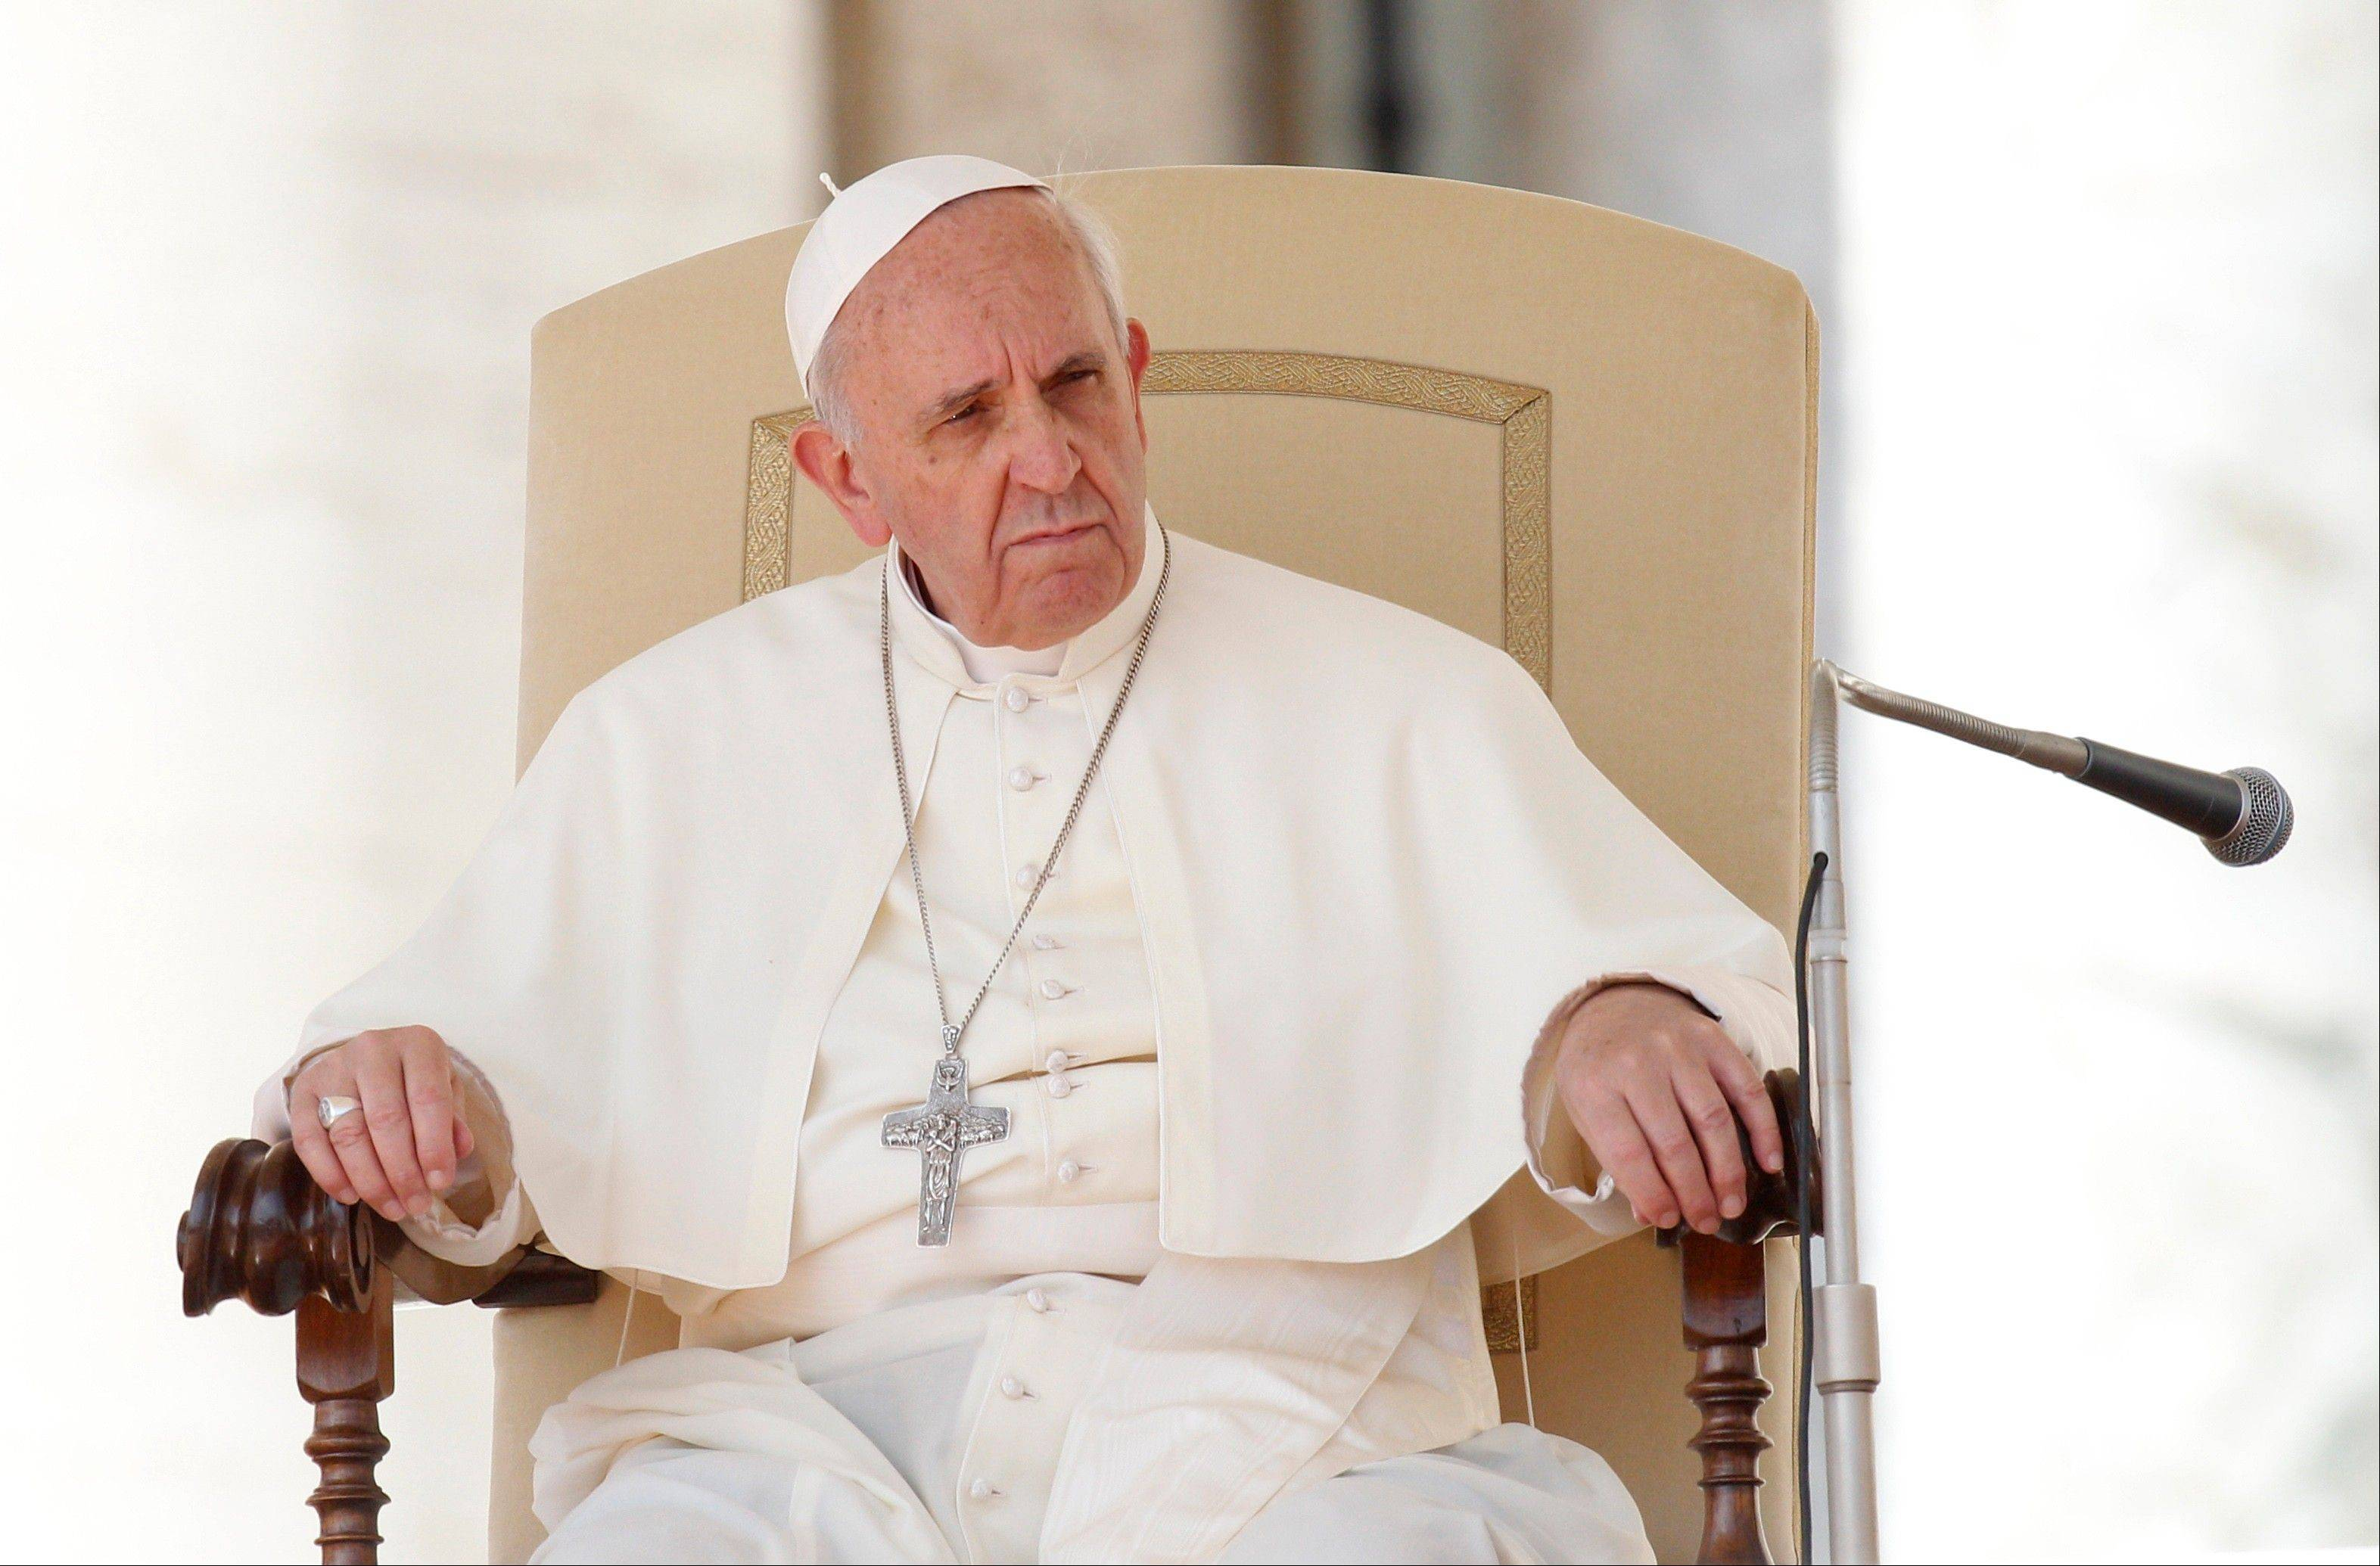 Pope blasts abortion after decrying focus on rules